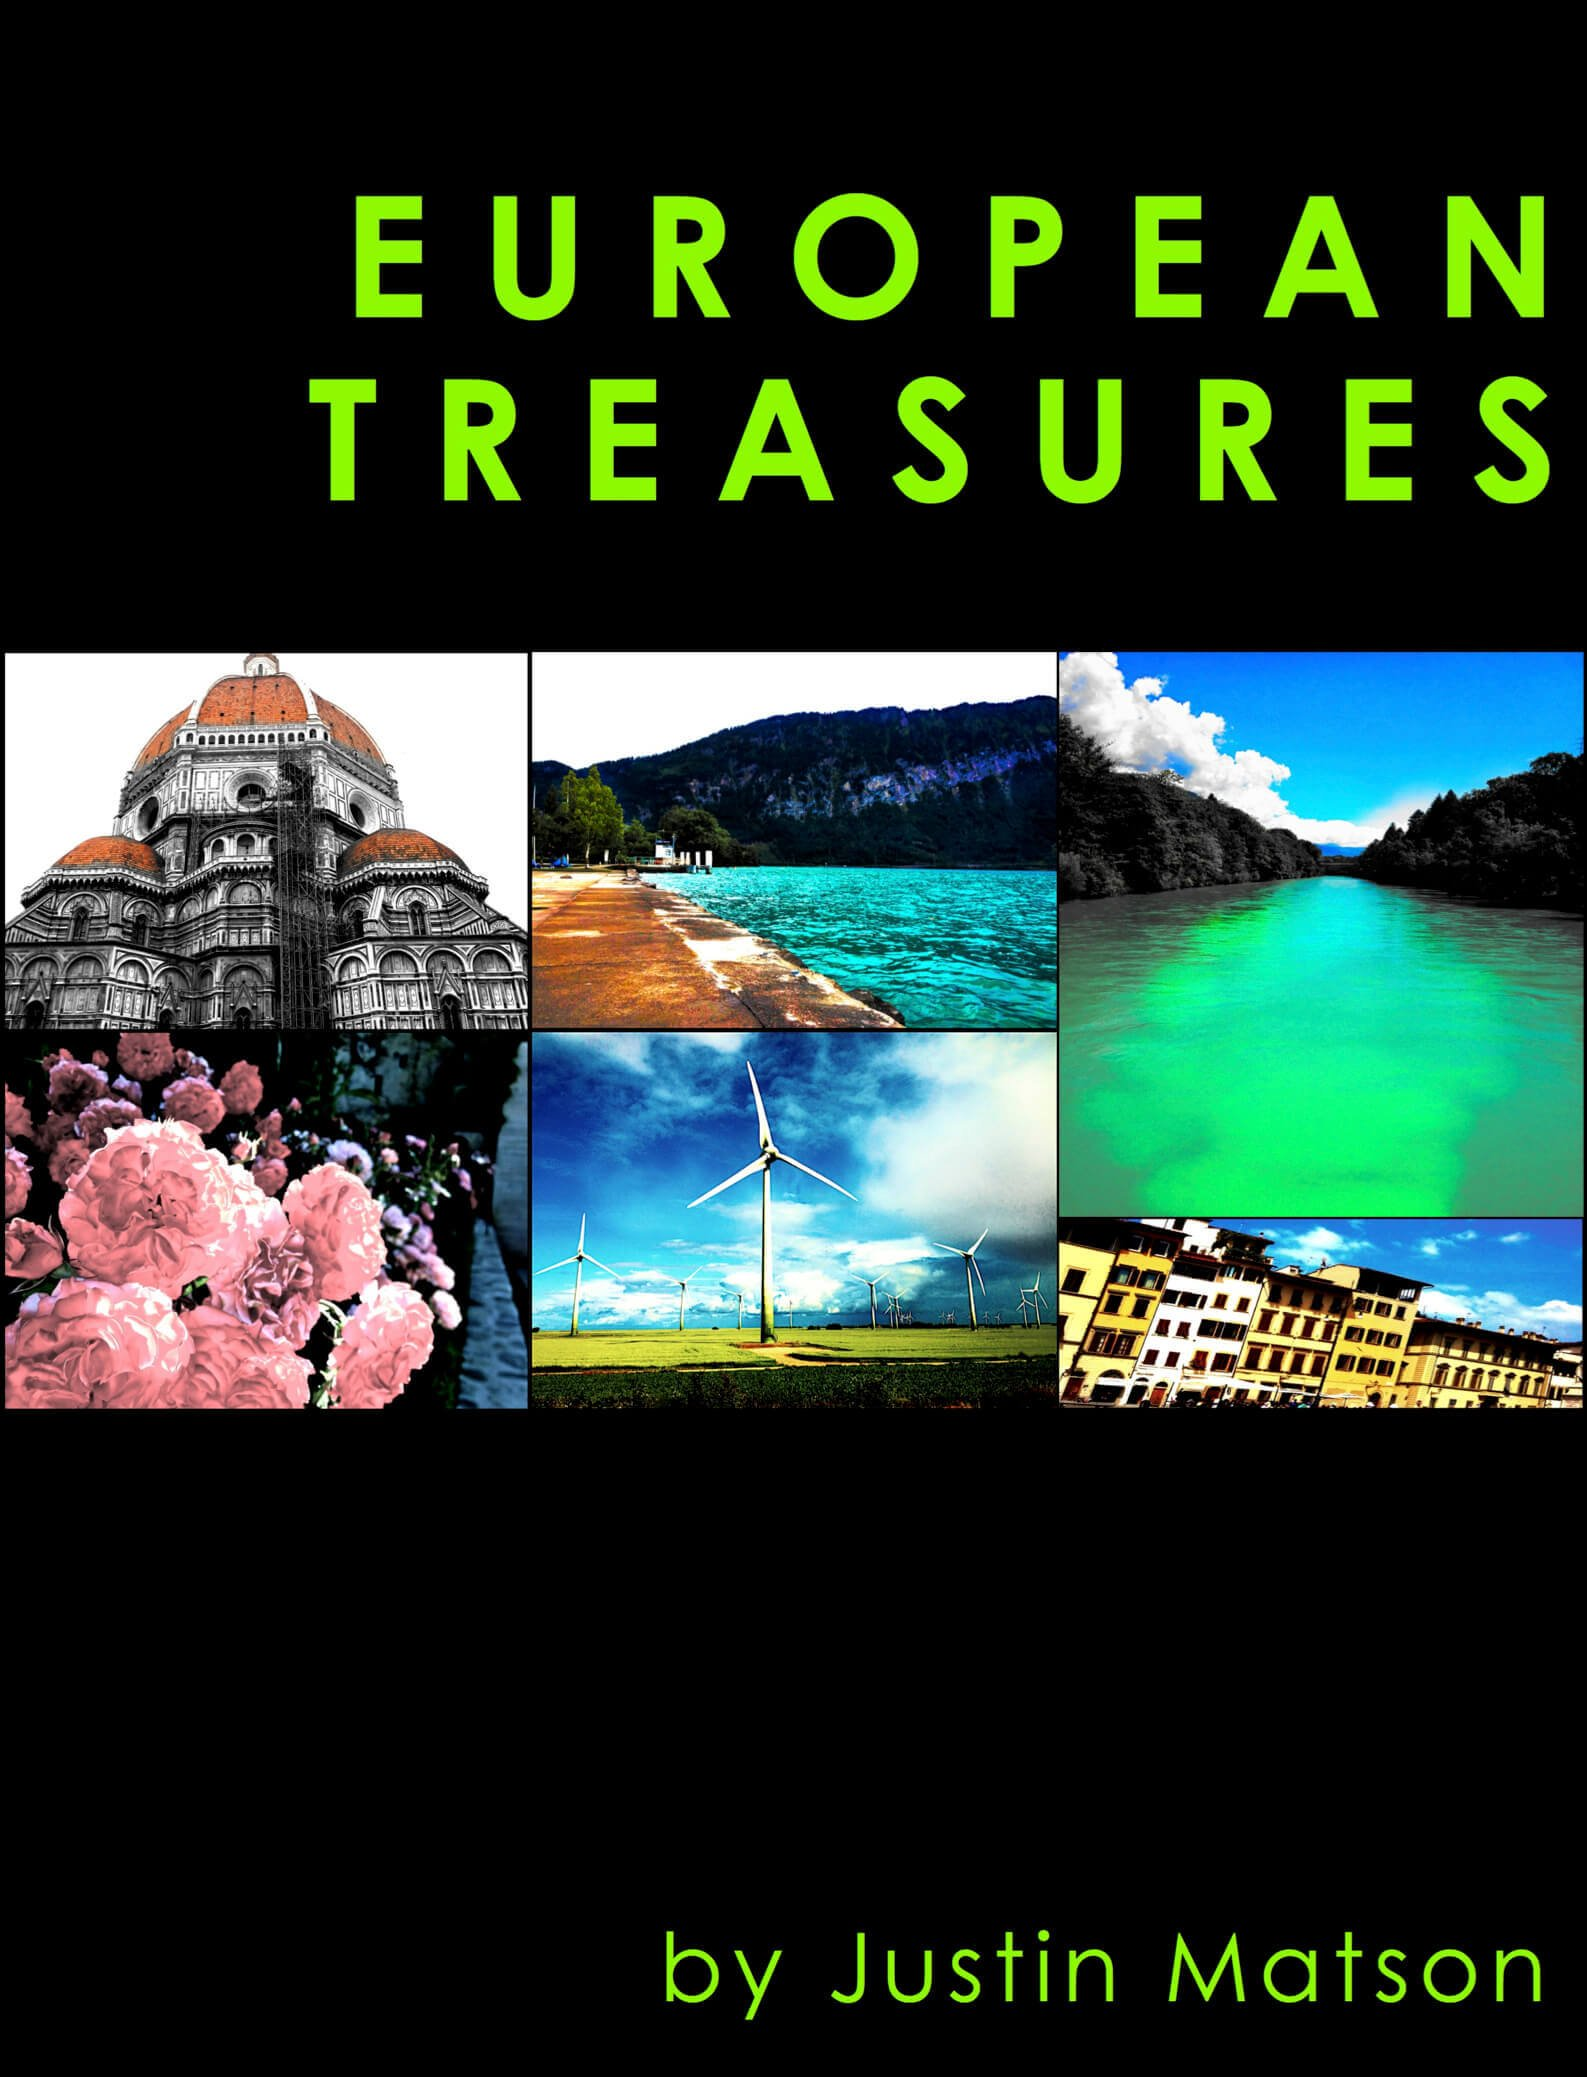 European Treasures